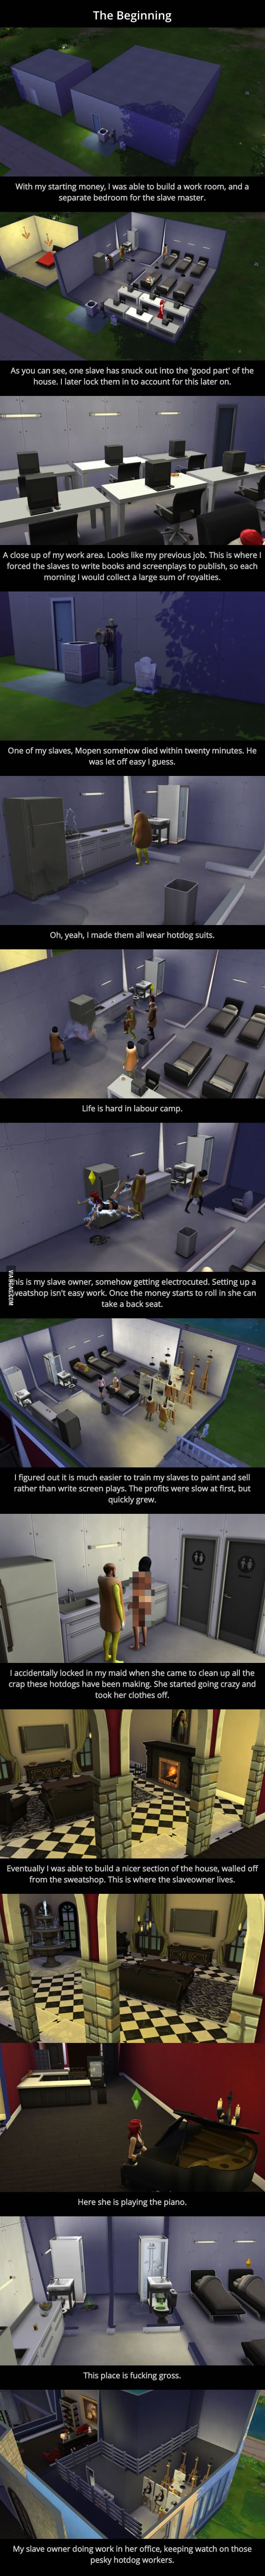 The Sims Sweatshop - 9GAG                                                                                                                                                                                 More